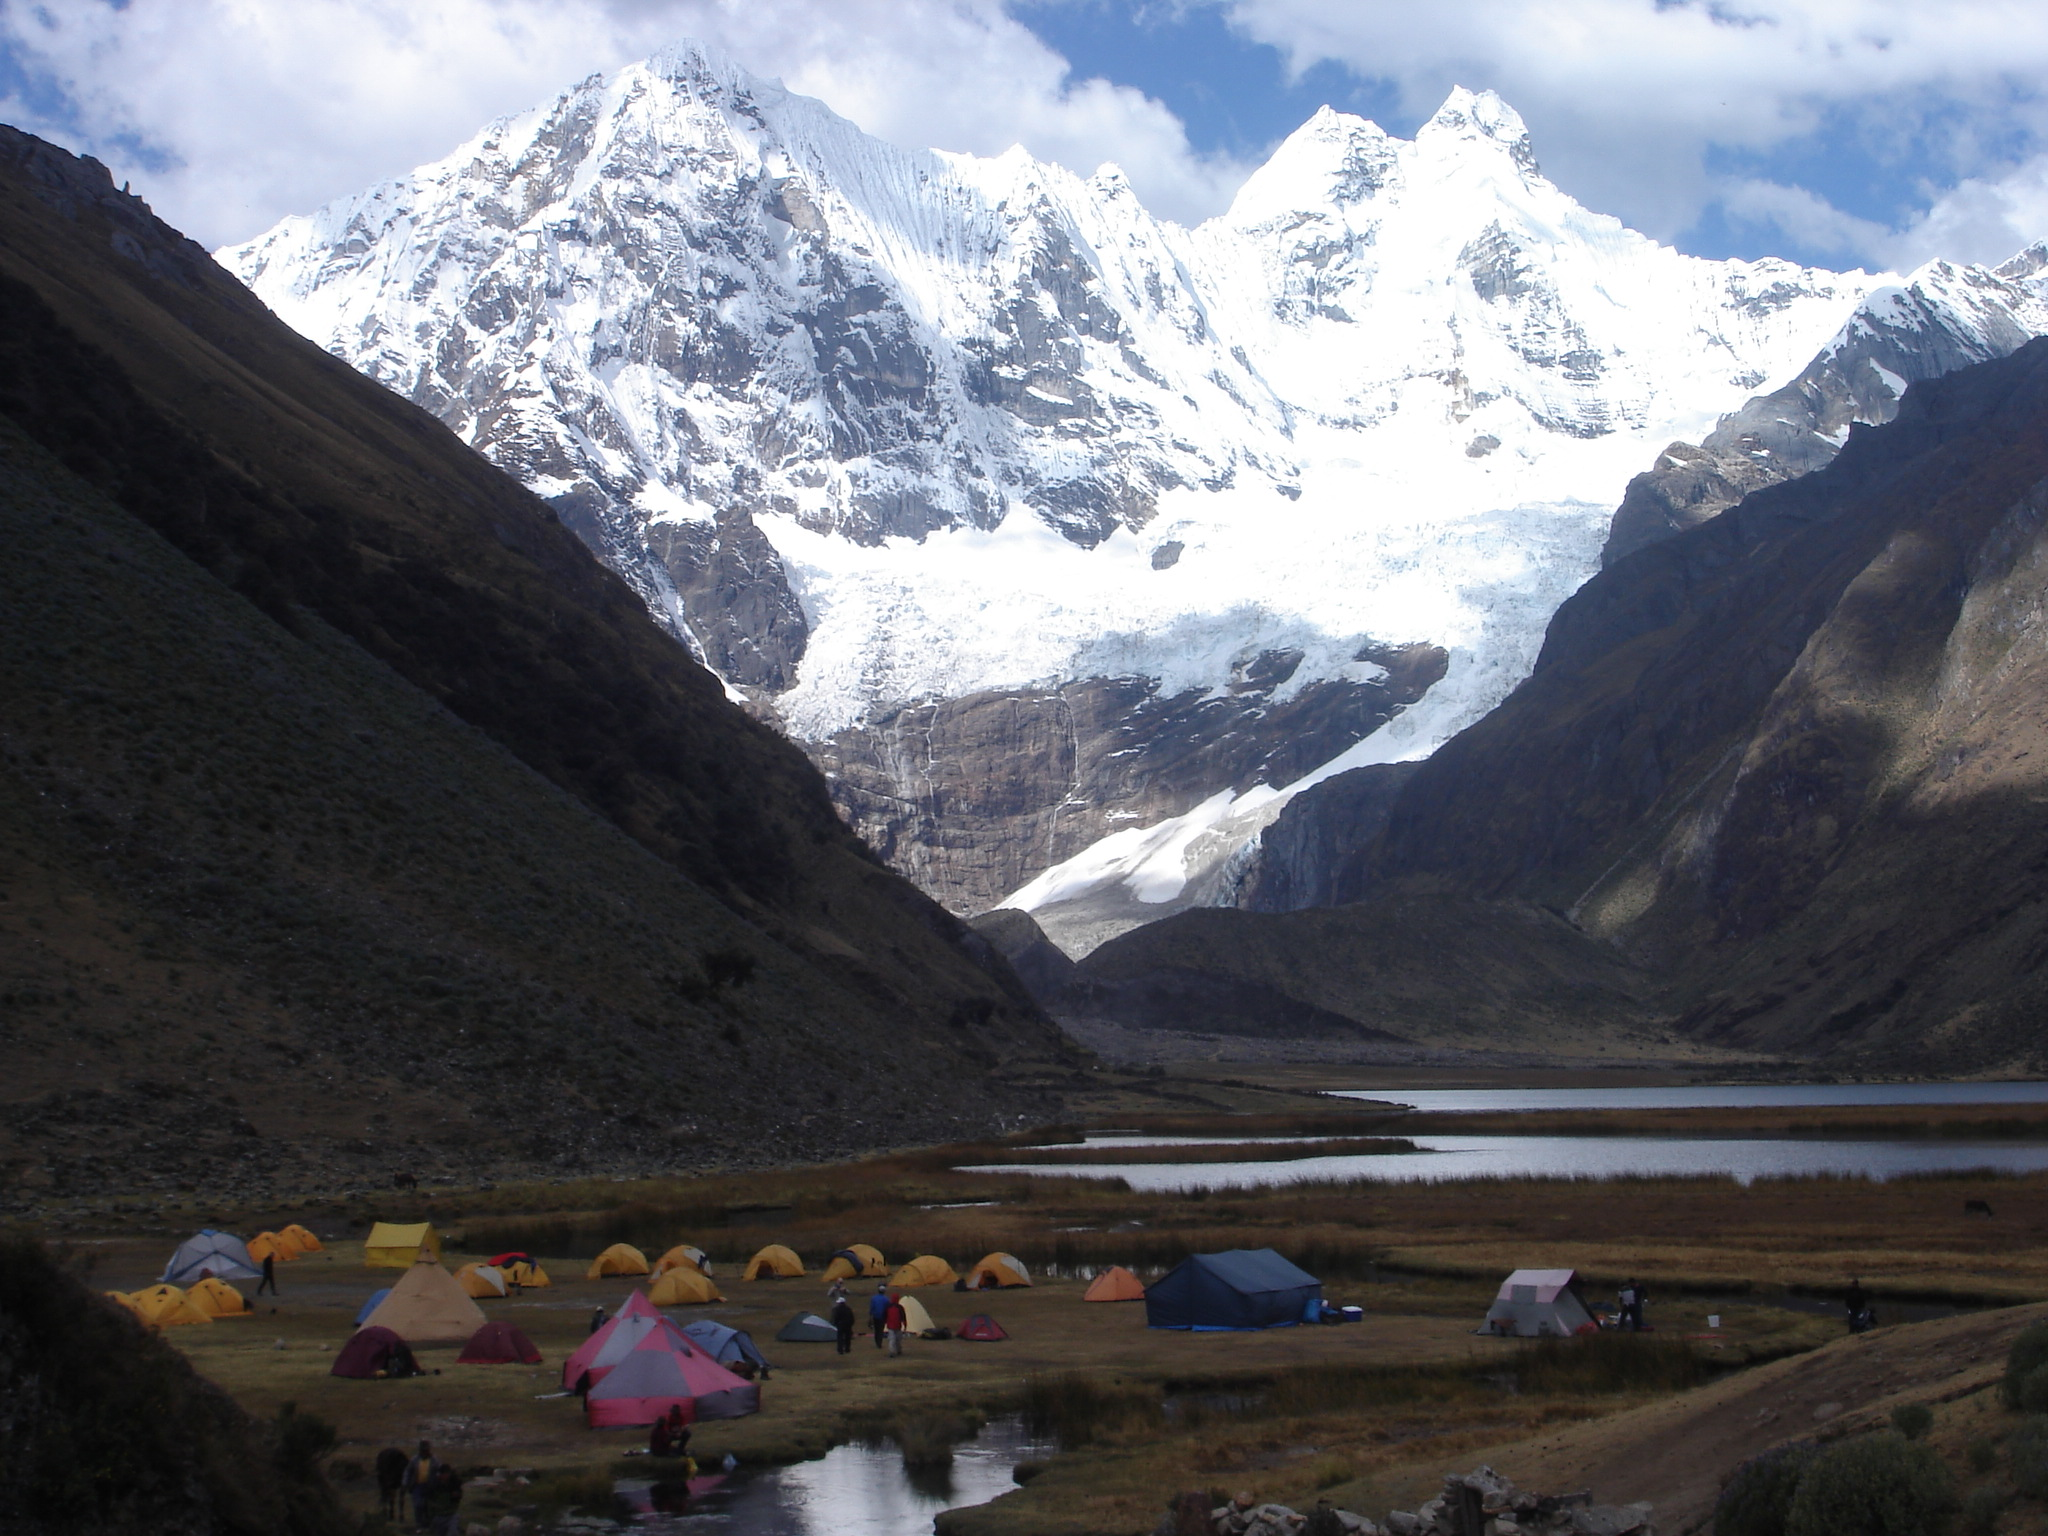 Jahuacocha camp, Huayhuas Trek